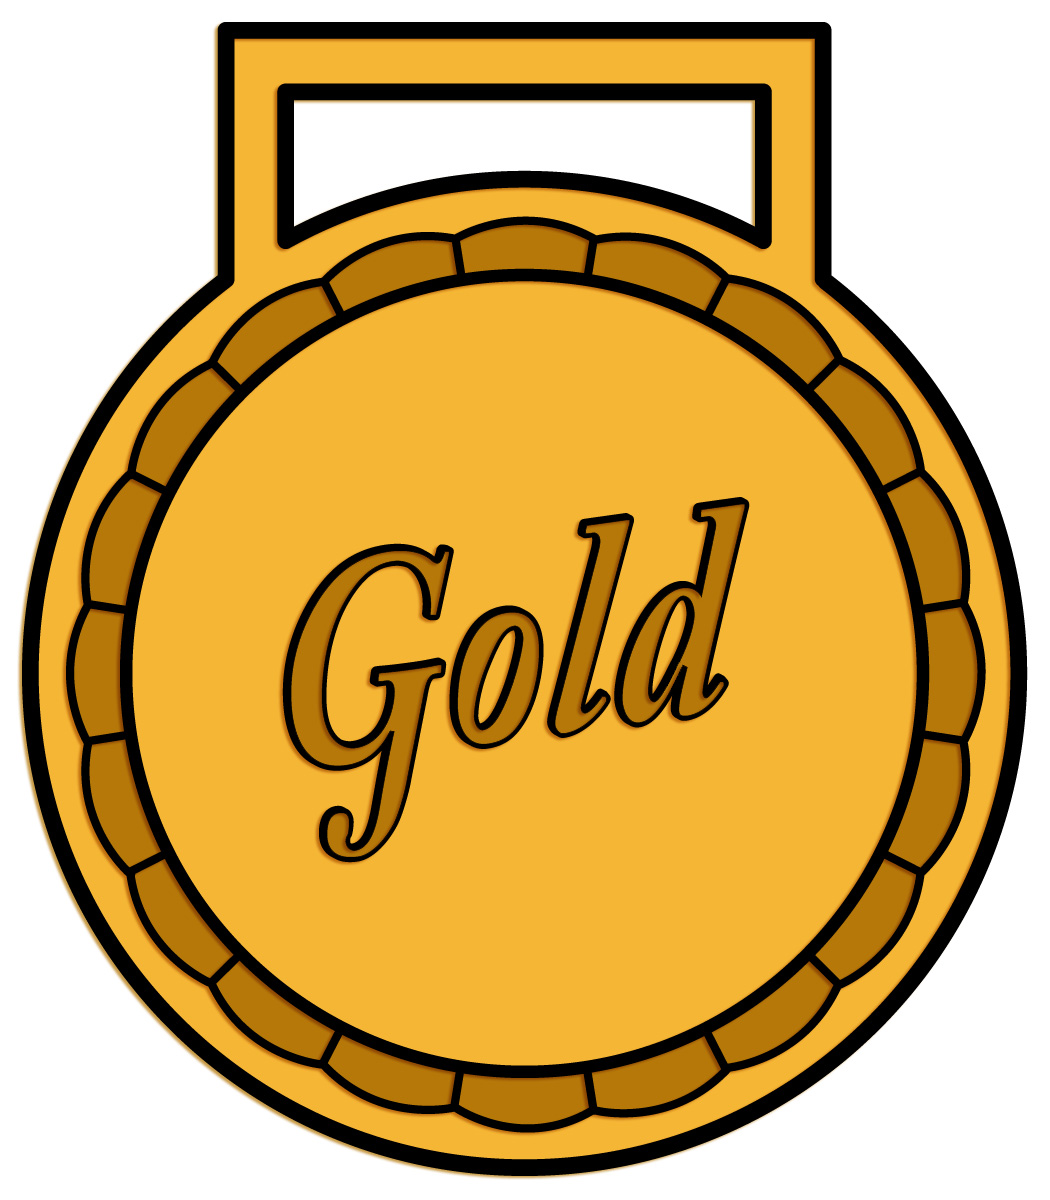 54 Images Of Gold Medal Clipart You Can -54 Images Of Gold Medal Clipart You Can Use These Free Cliparts For-13